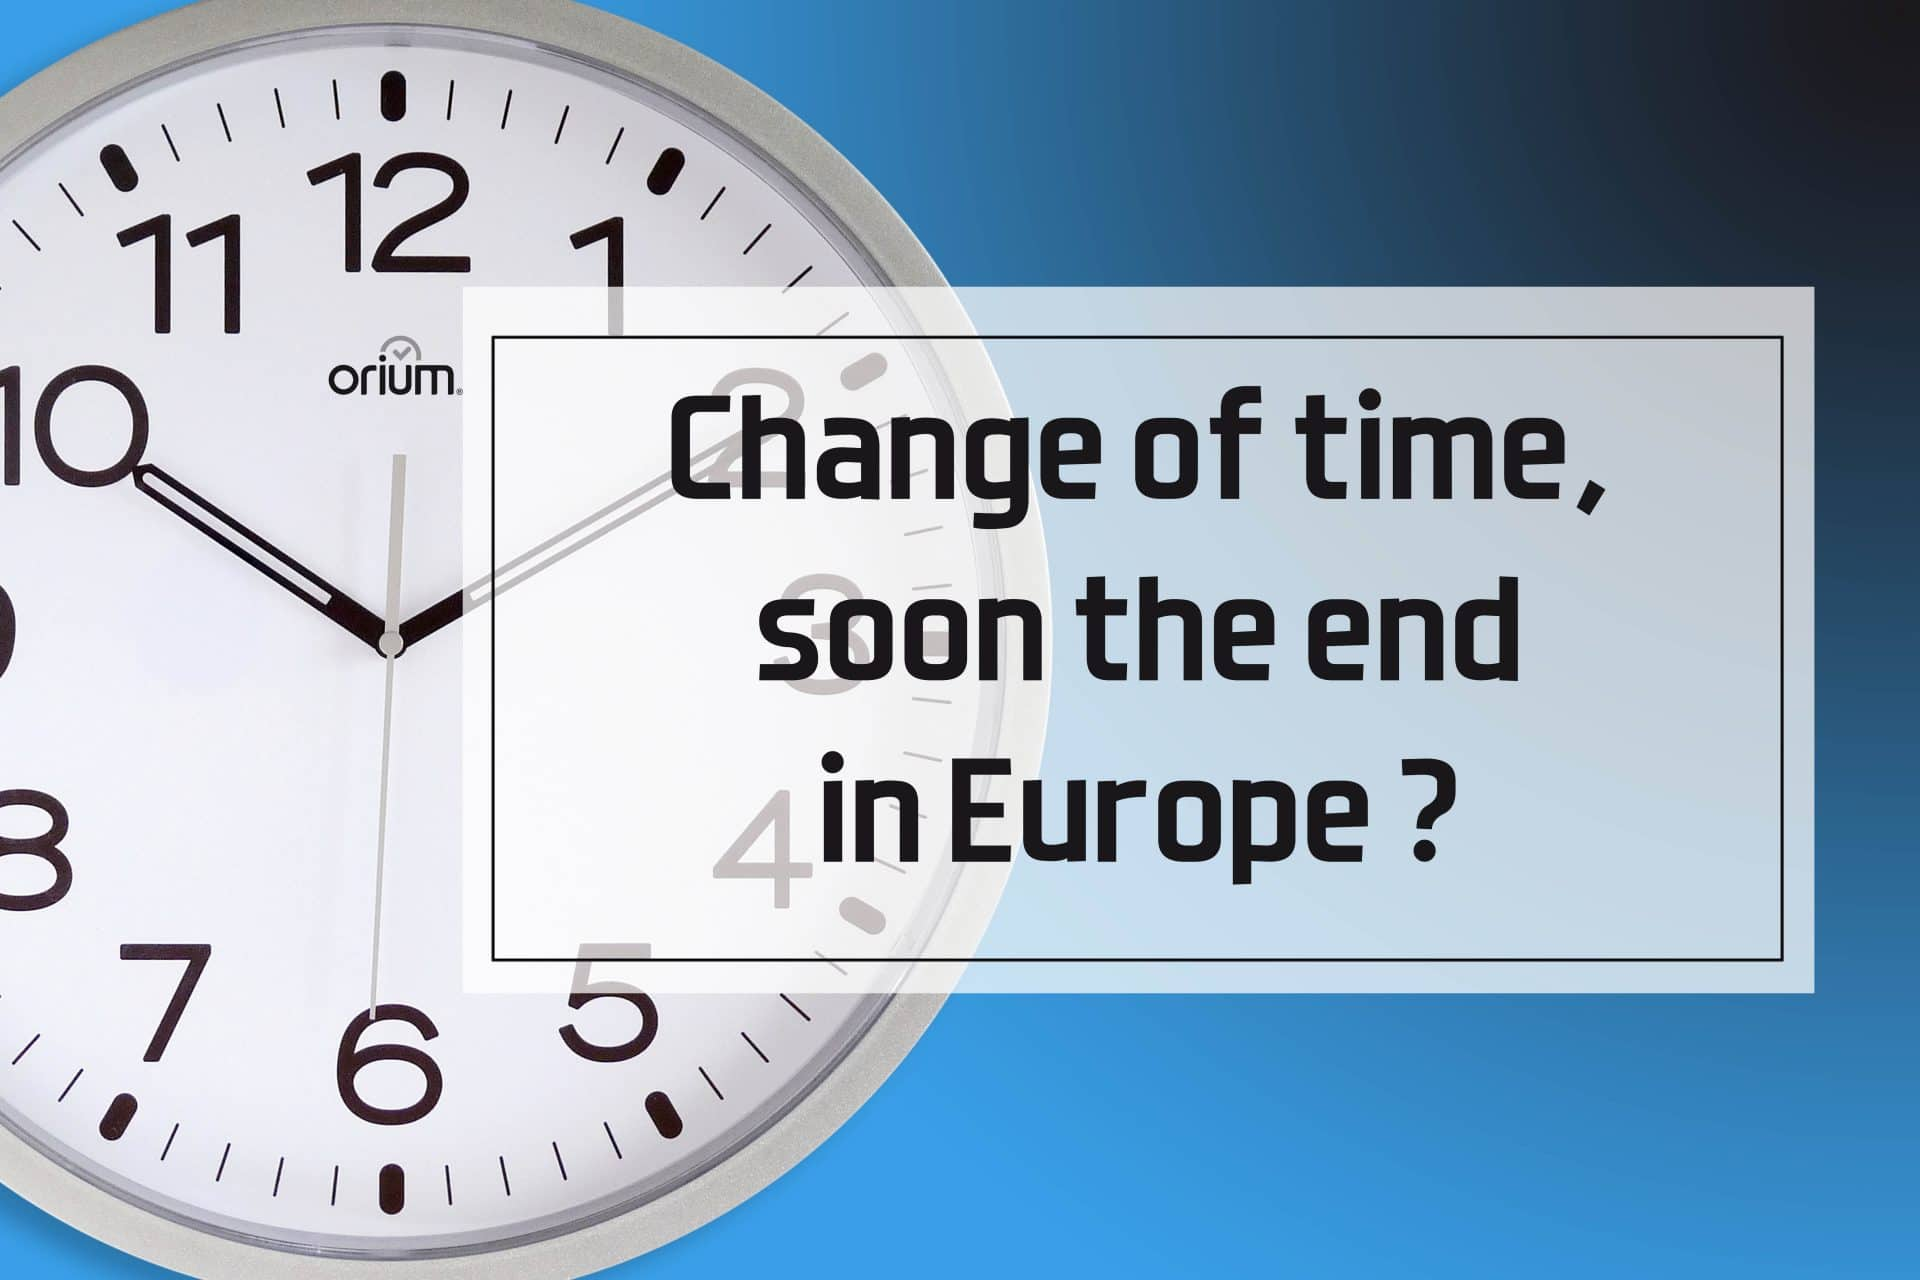 To the end of the Change of Time in Europe?